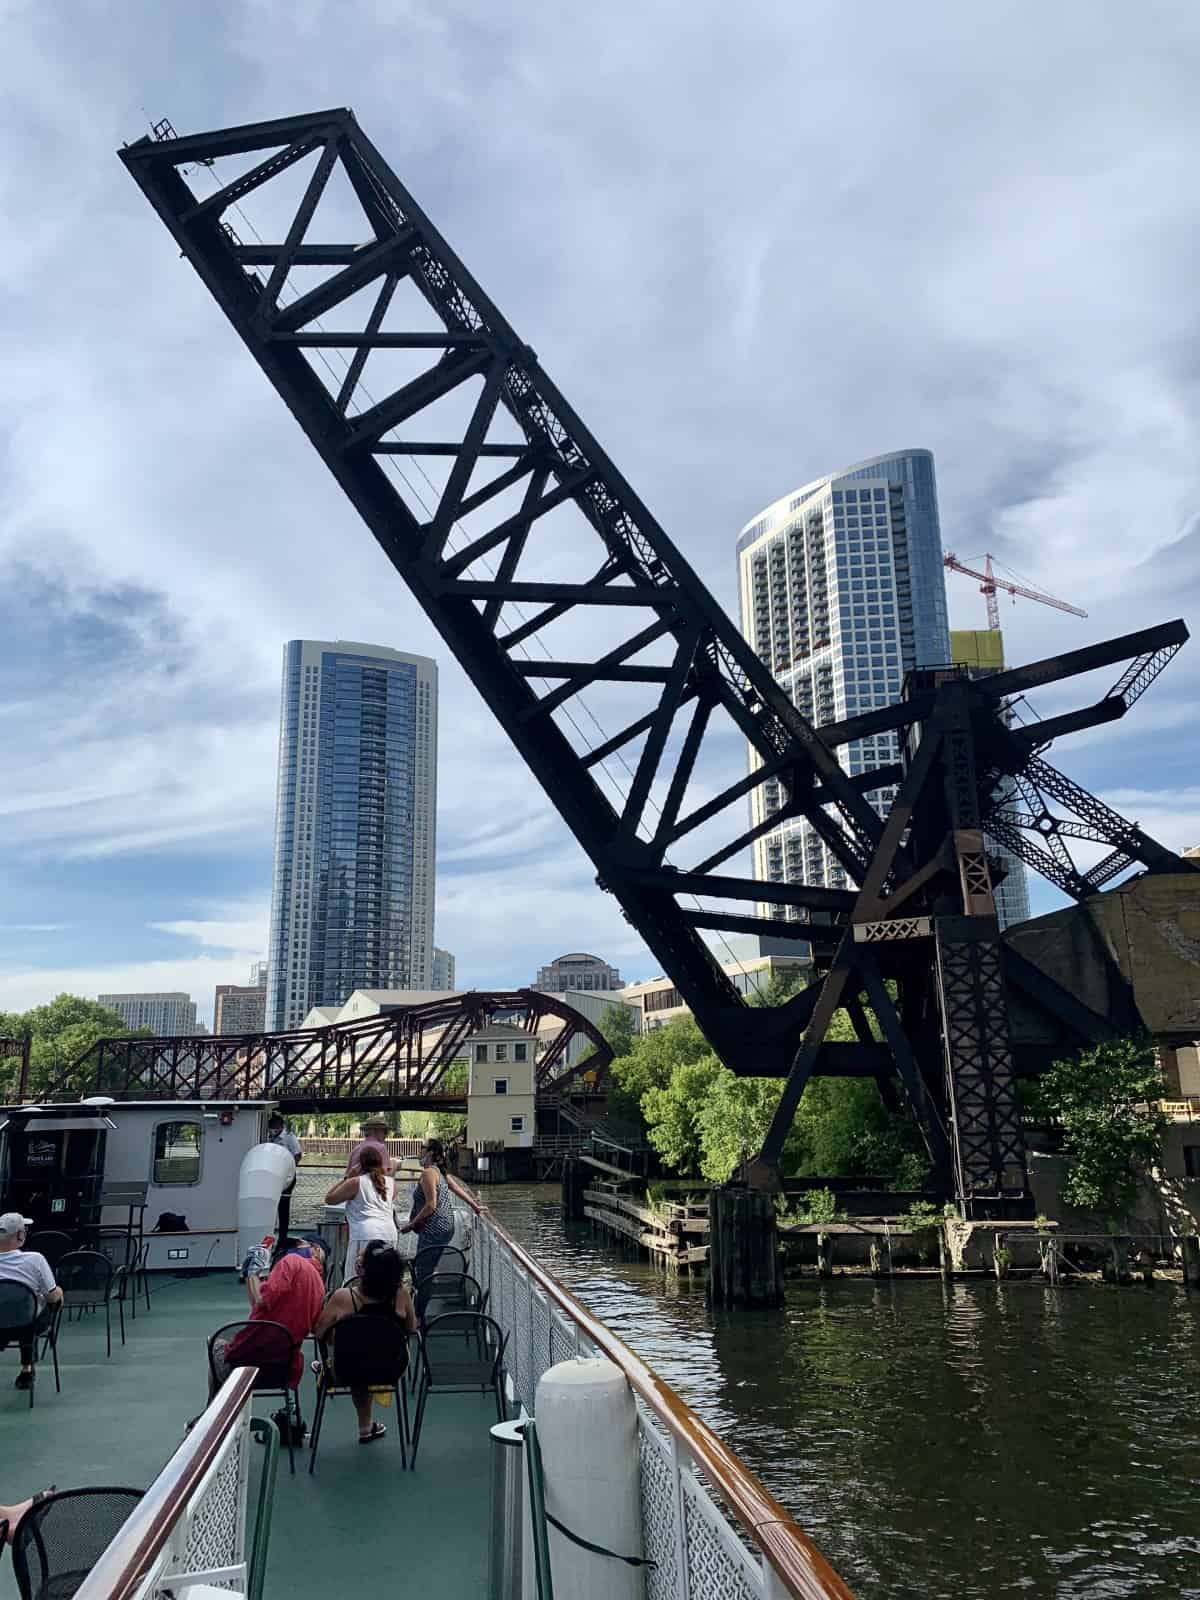 A now-defunct railroad bridge you'll see on the Chicago architecture boat tour